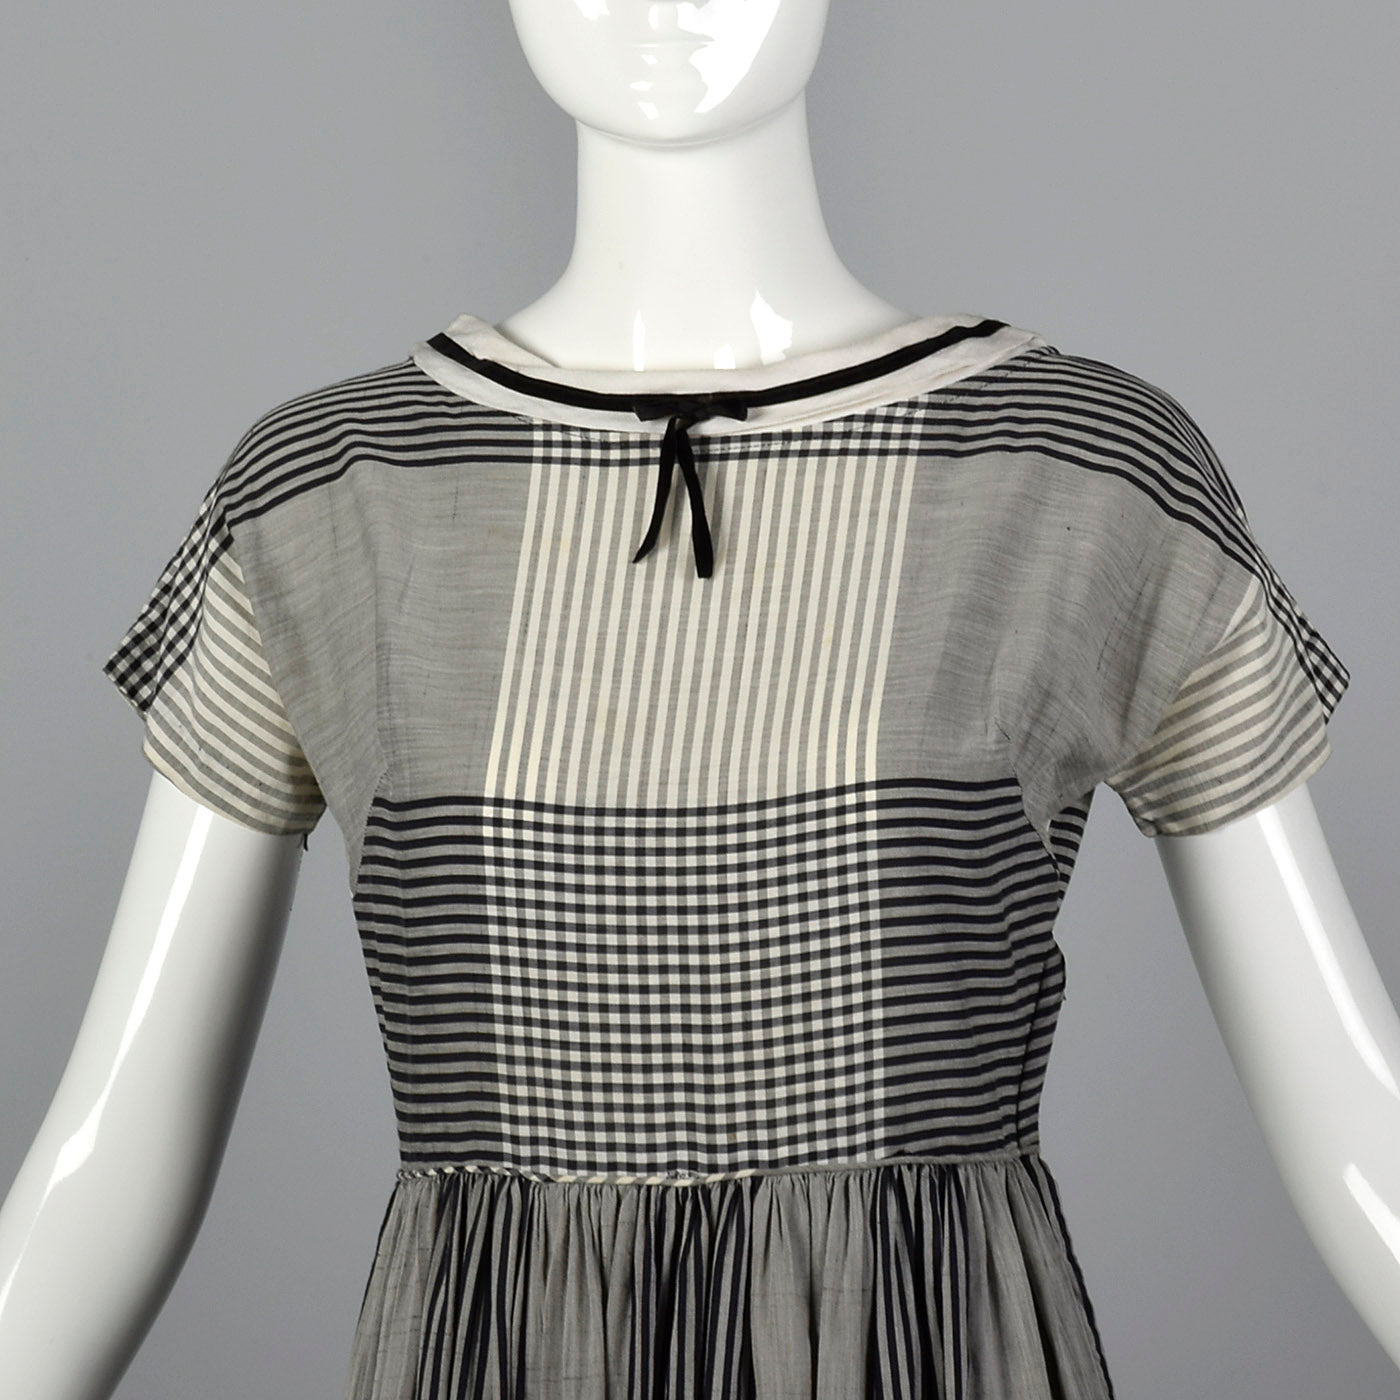 1950s Black and White Plaid Dress